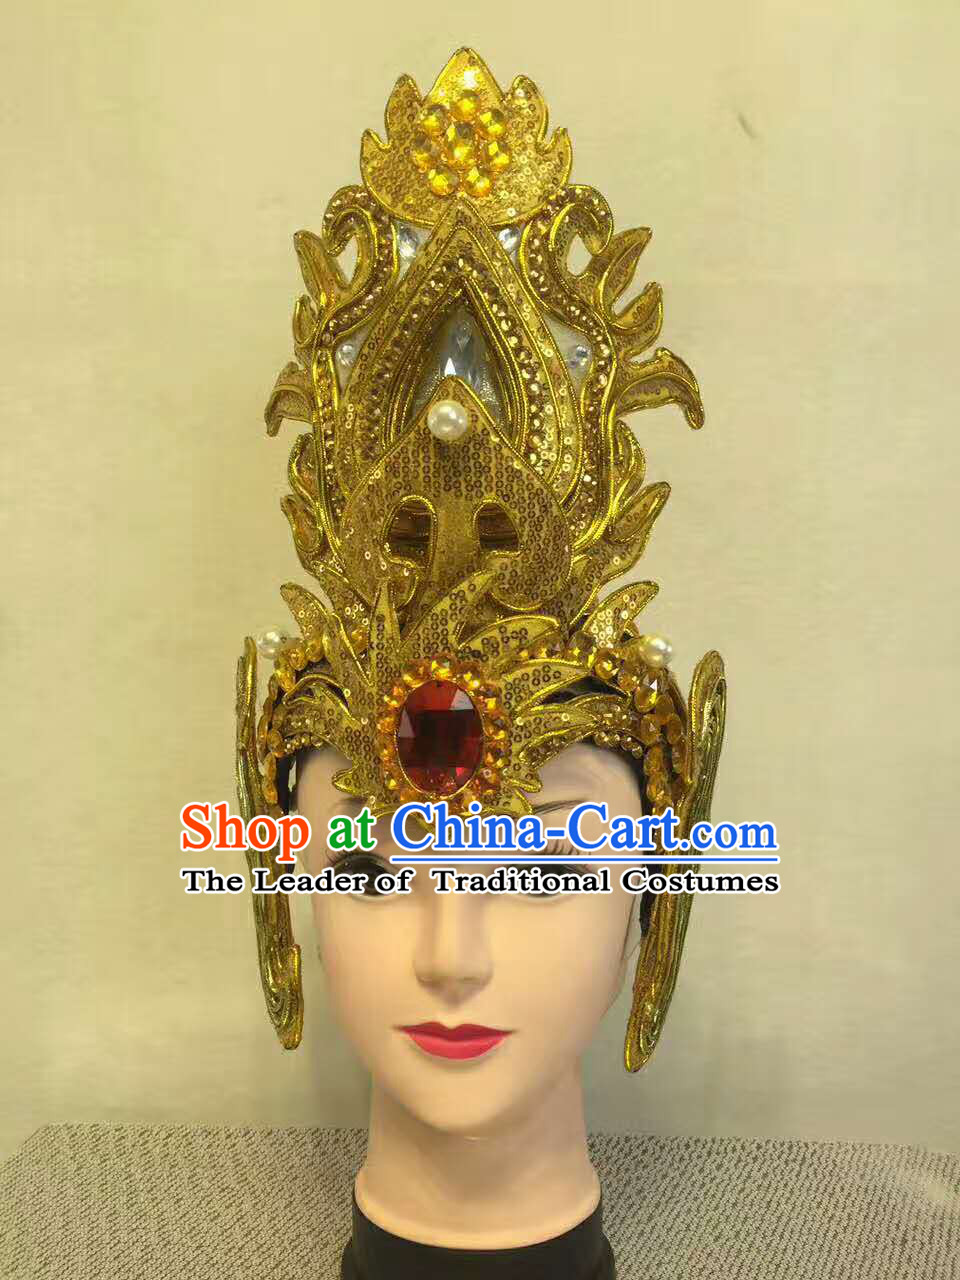 Professional Stage Performance Hat Made to Order Custom Tailored Head Wear Classical Headpieces Hair Accessories